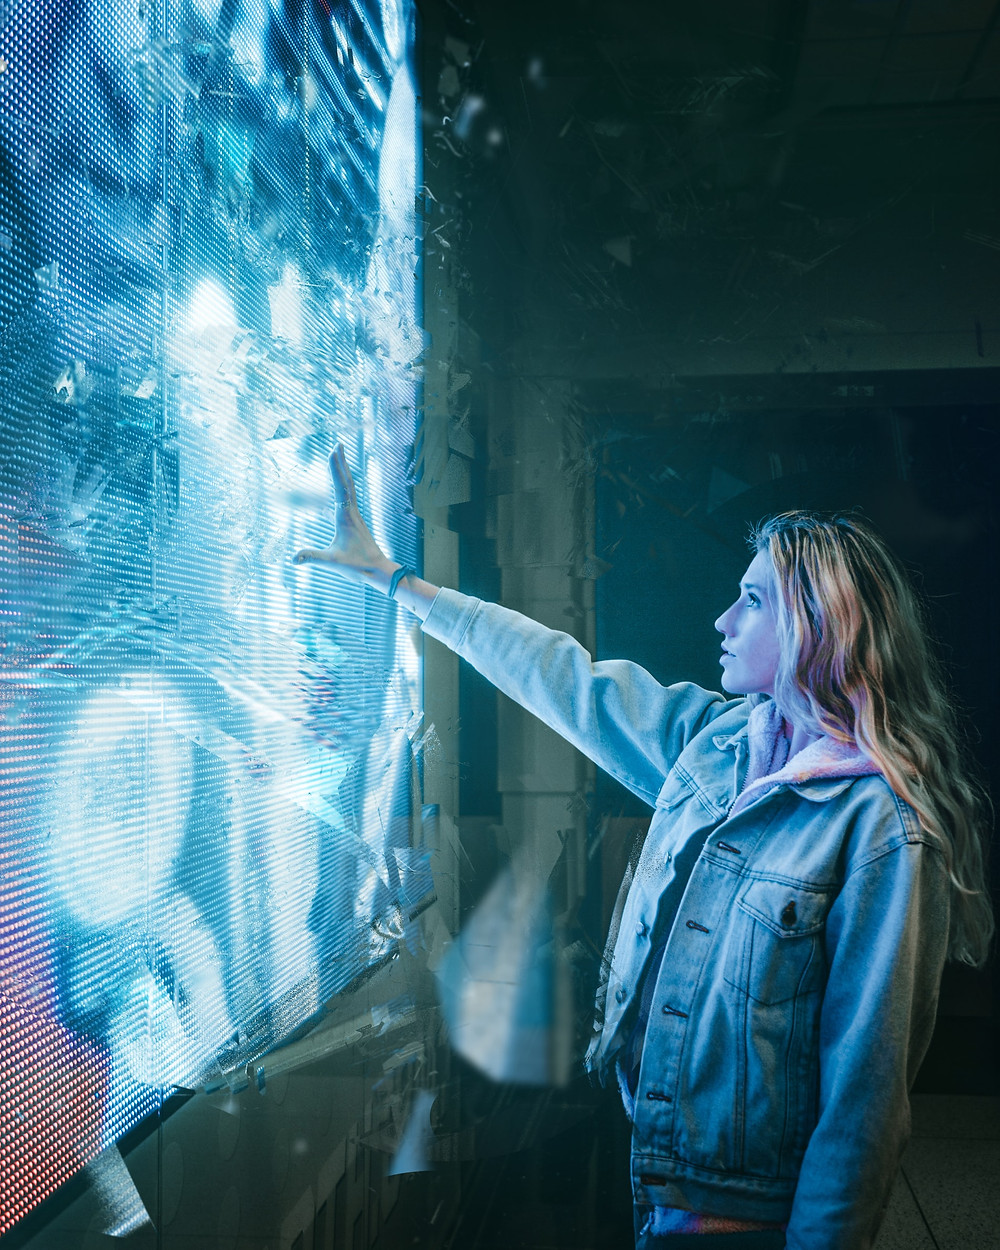 Woman in urban clothing touching a large, blue artificial screen.